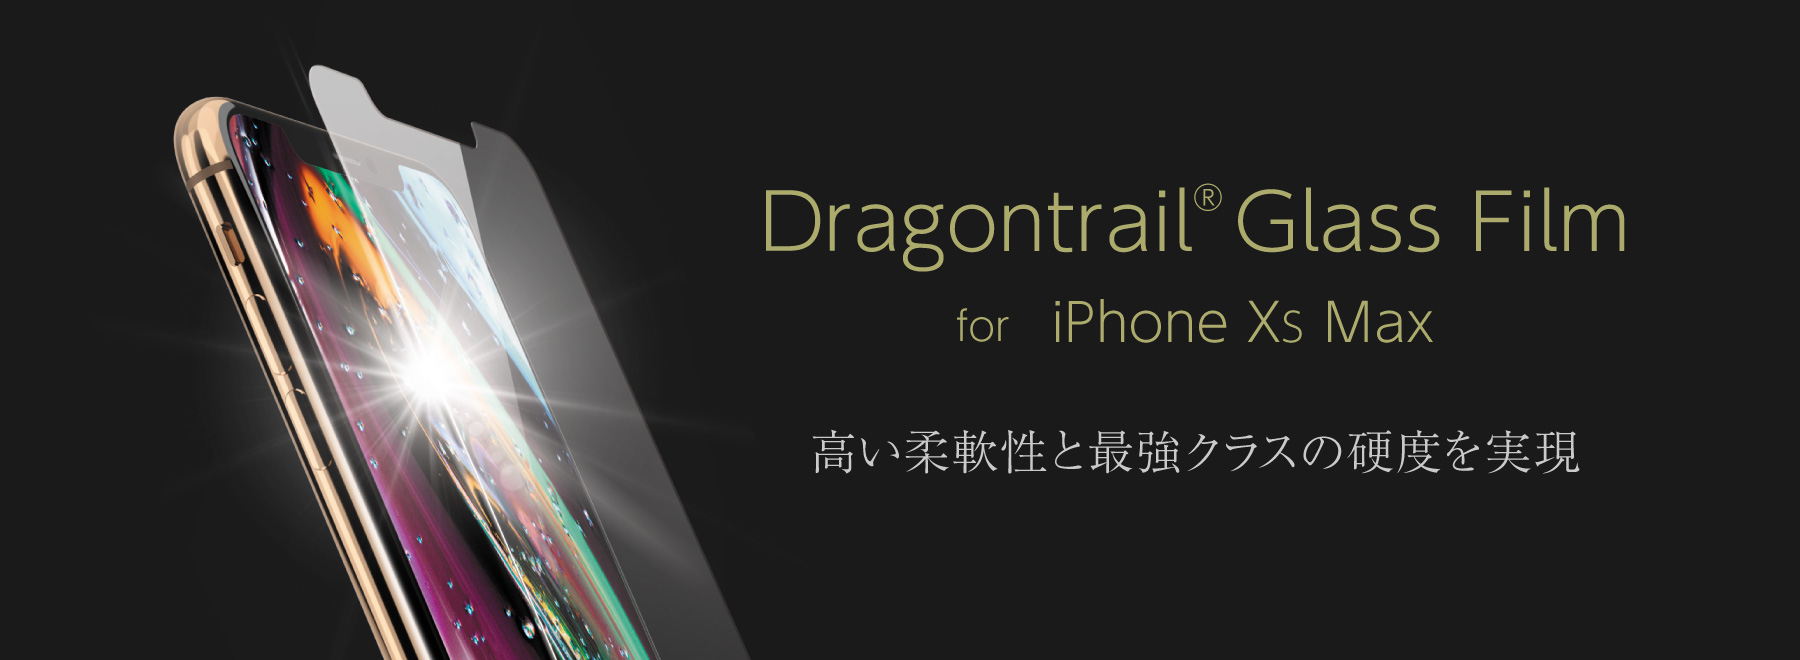 Dragontrail® Glass Film for iPhone XS Max, XR